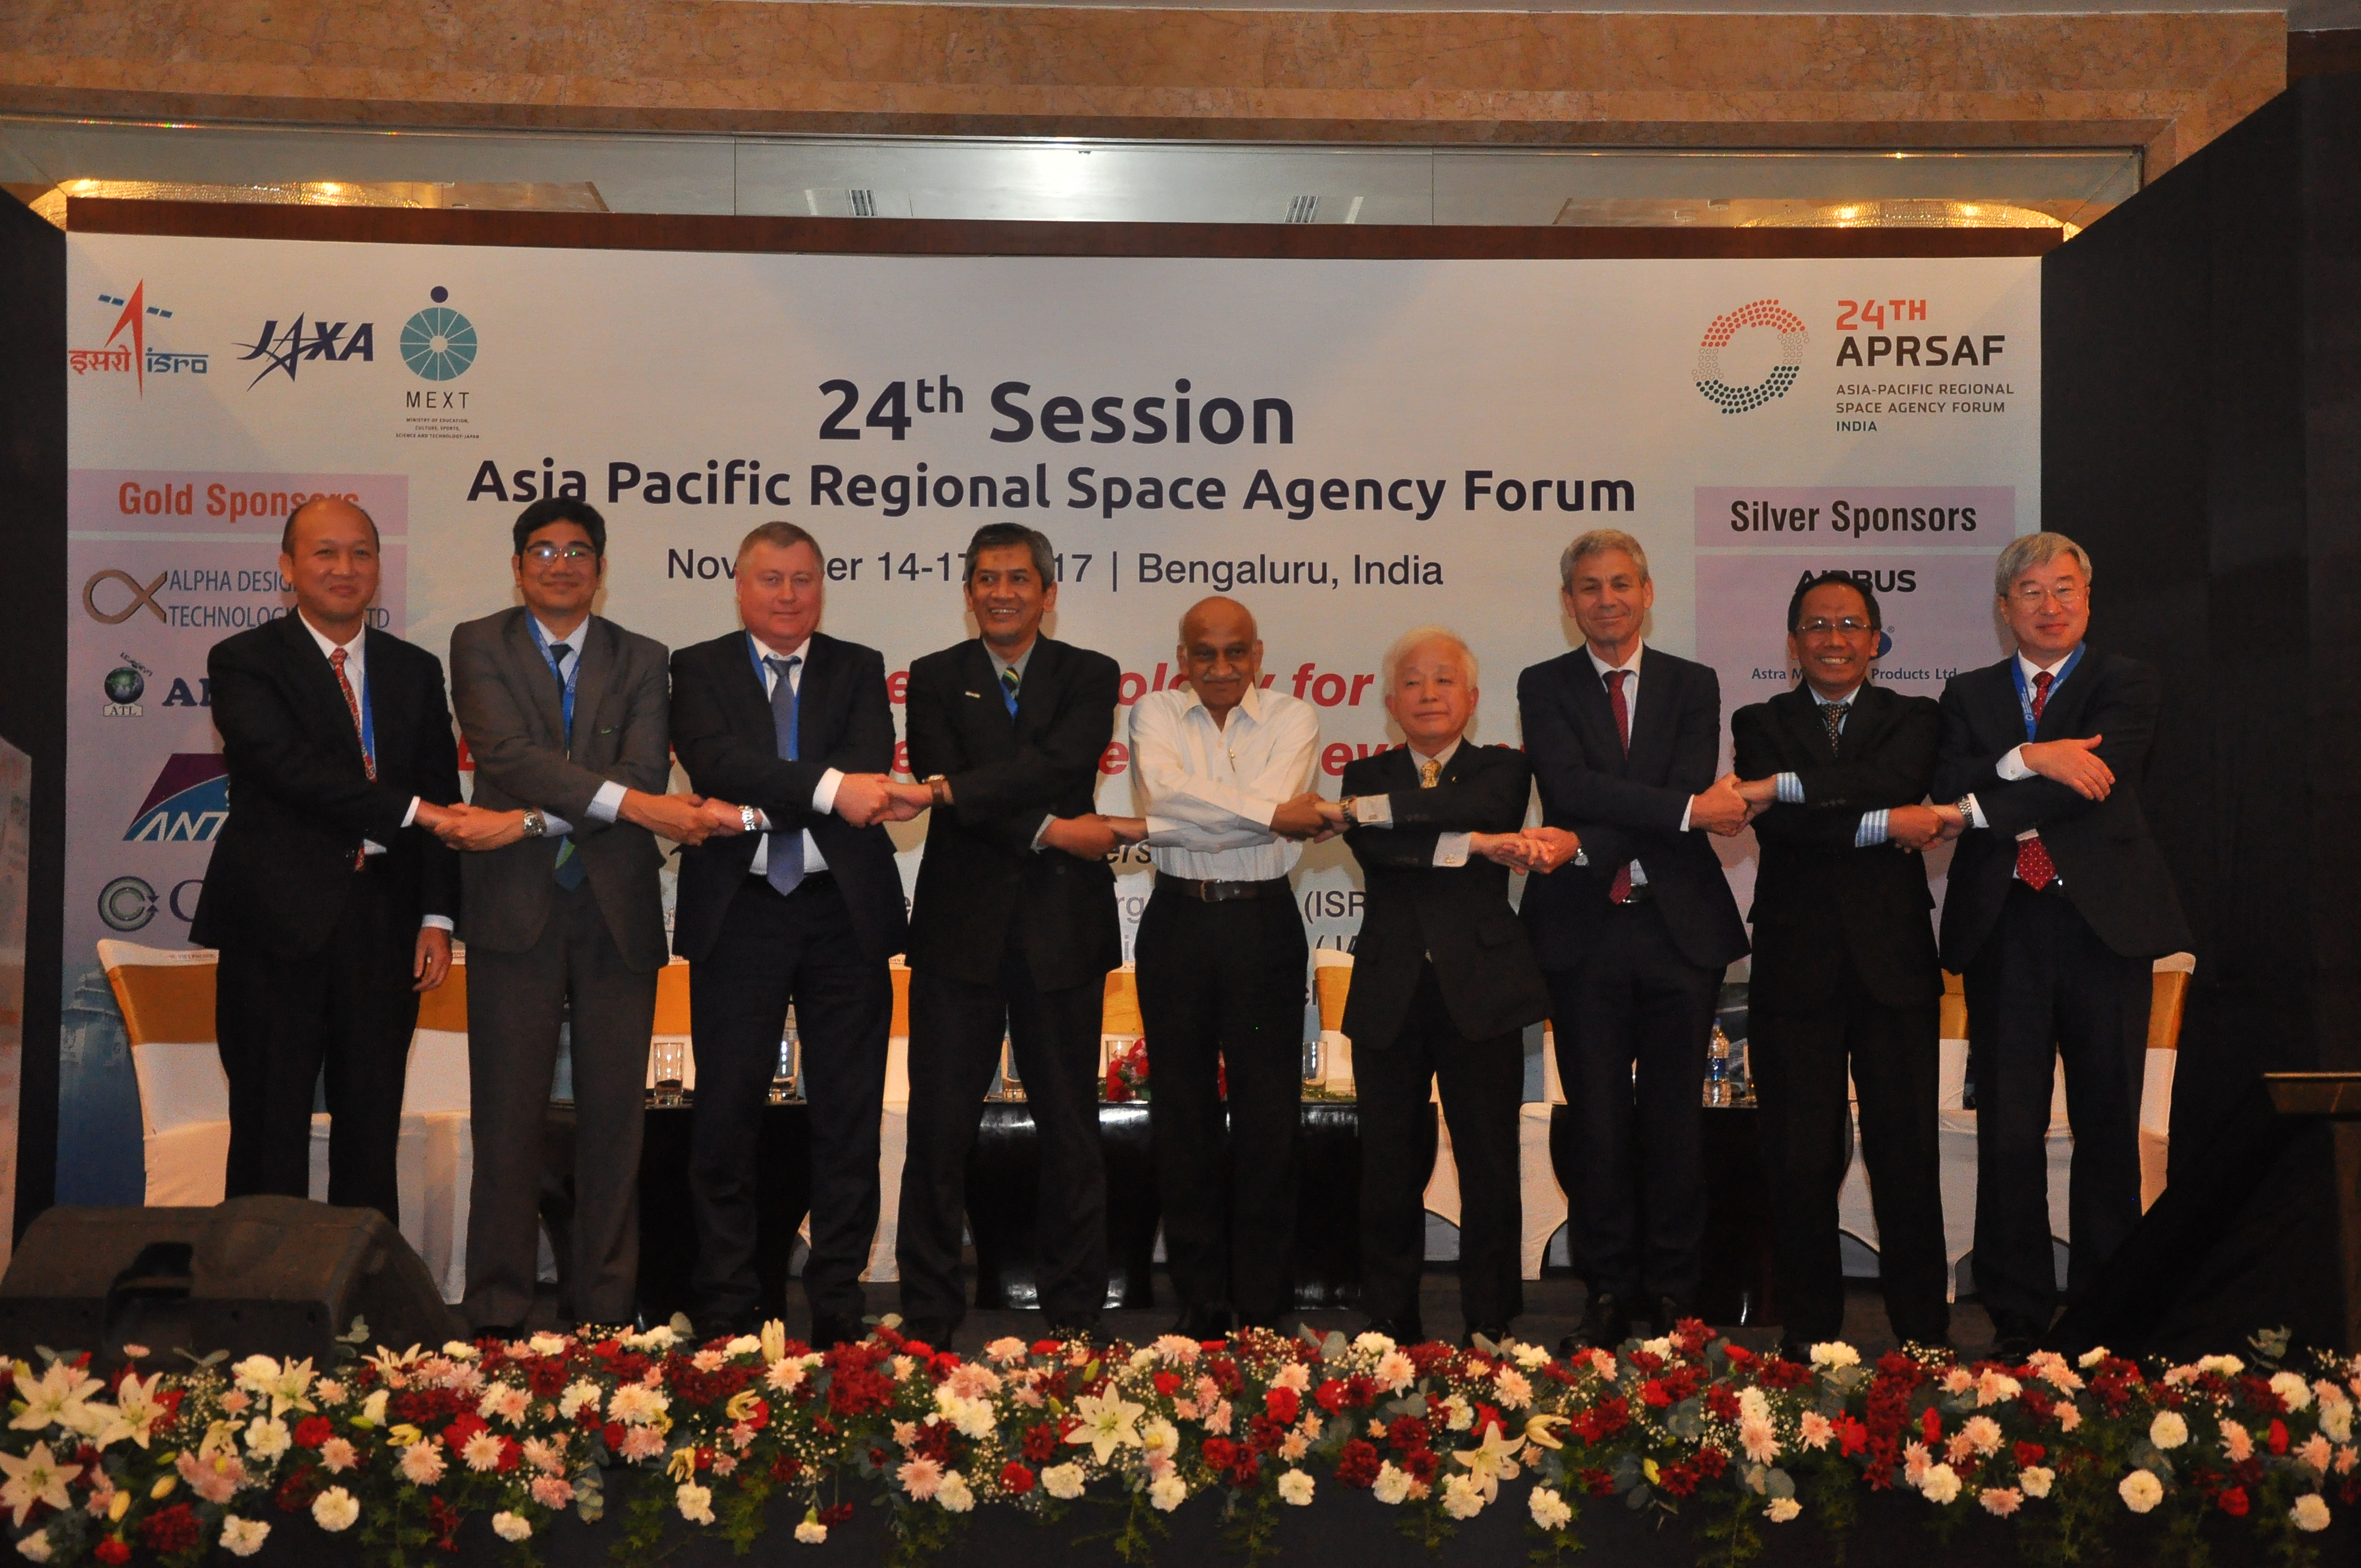 Heads of Space Agencies of Asia-Pacific Countries during the Plenary of APRSAF-24